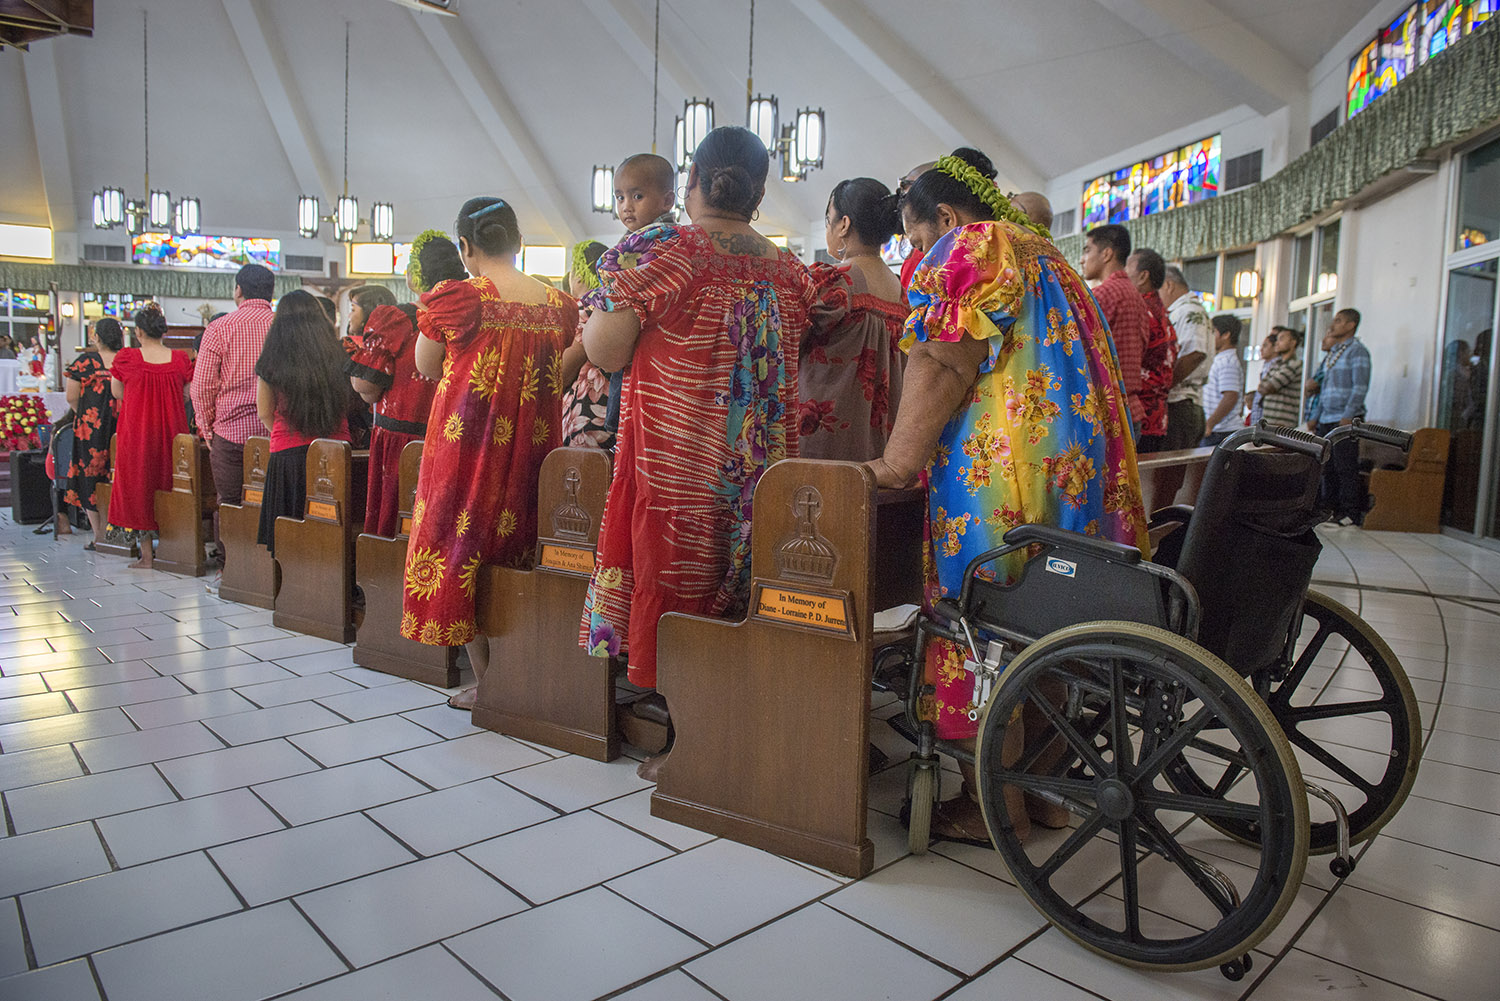 <p>It's estimated that as many as 20,000 Micronesians now call Guam home. Some attend services at the Parish of Santa Barbara in Dededo.</p>